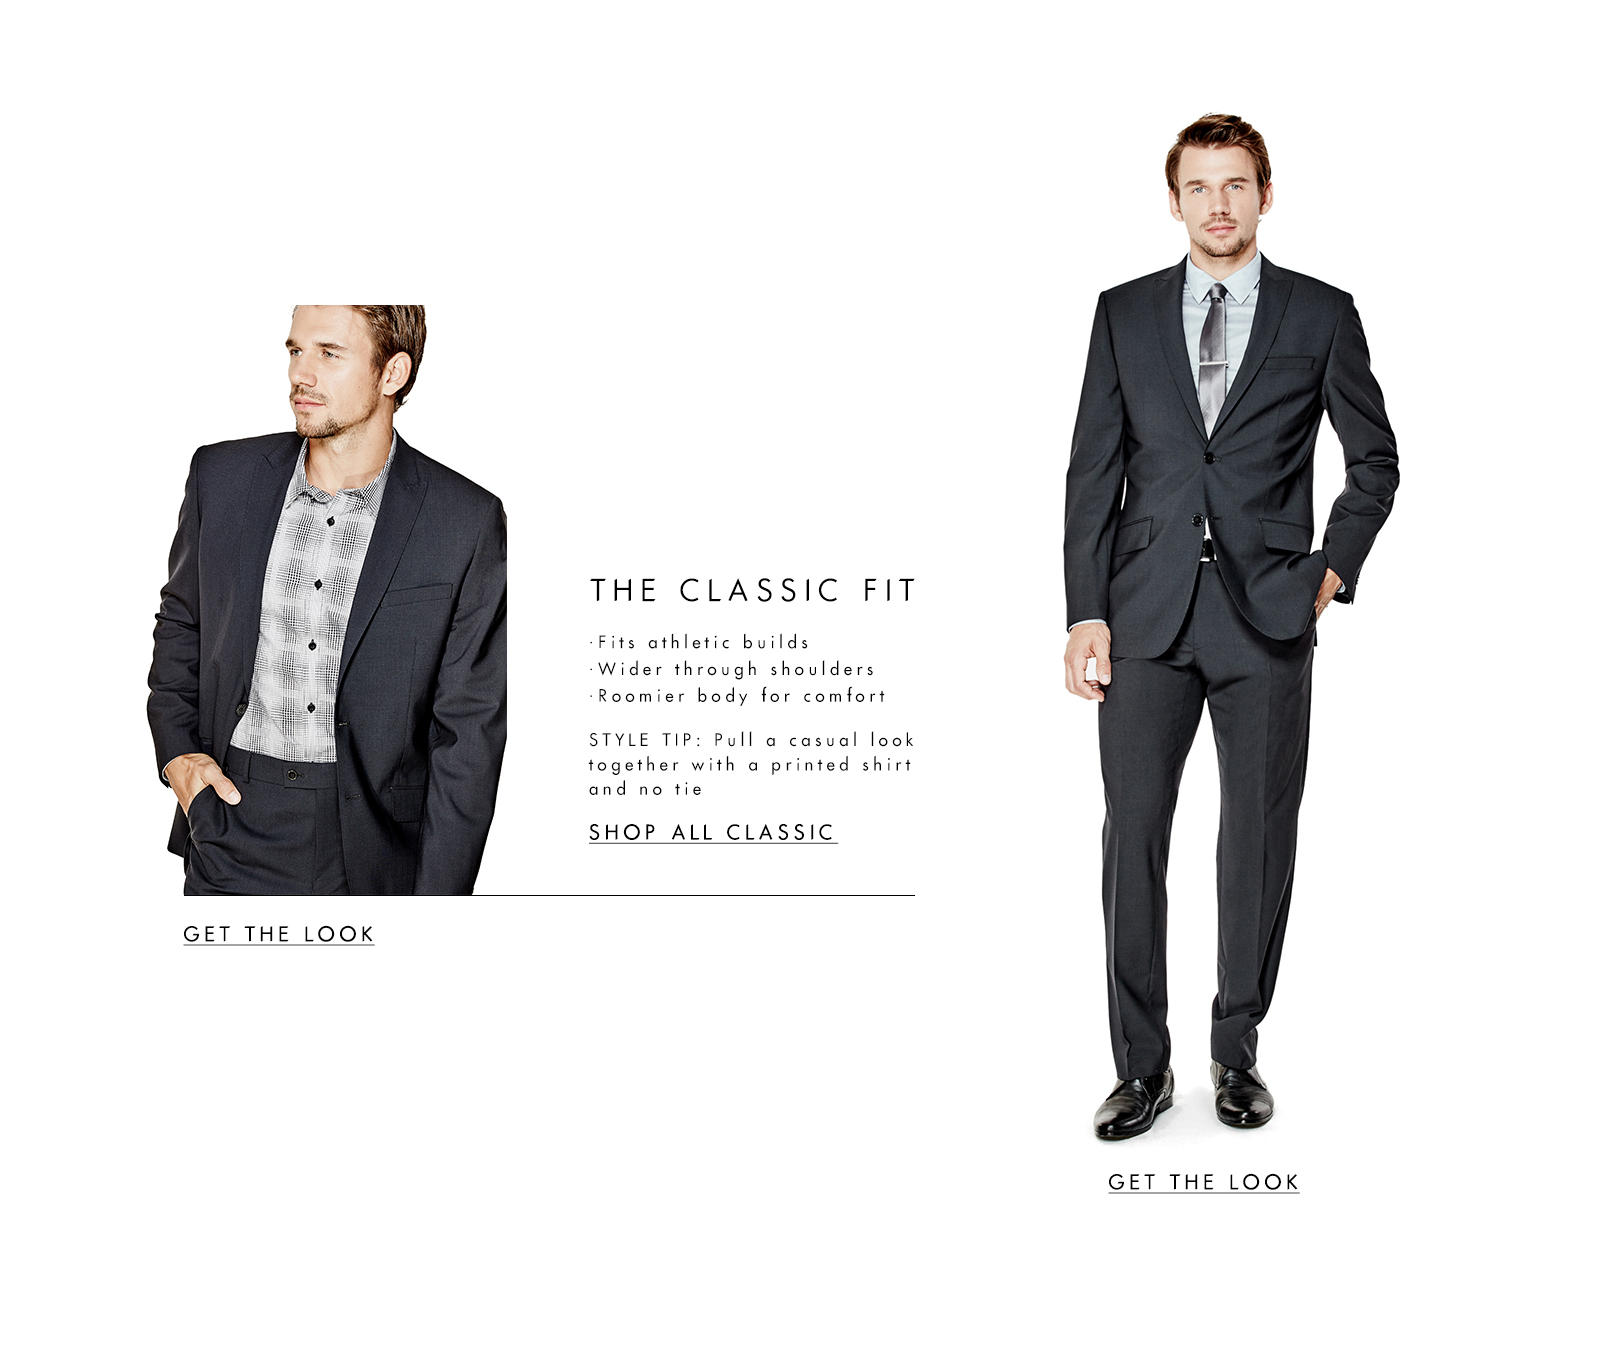 Suiting: The Classic Fit